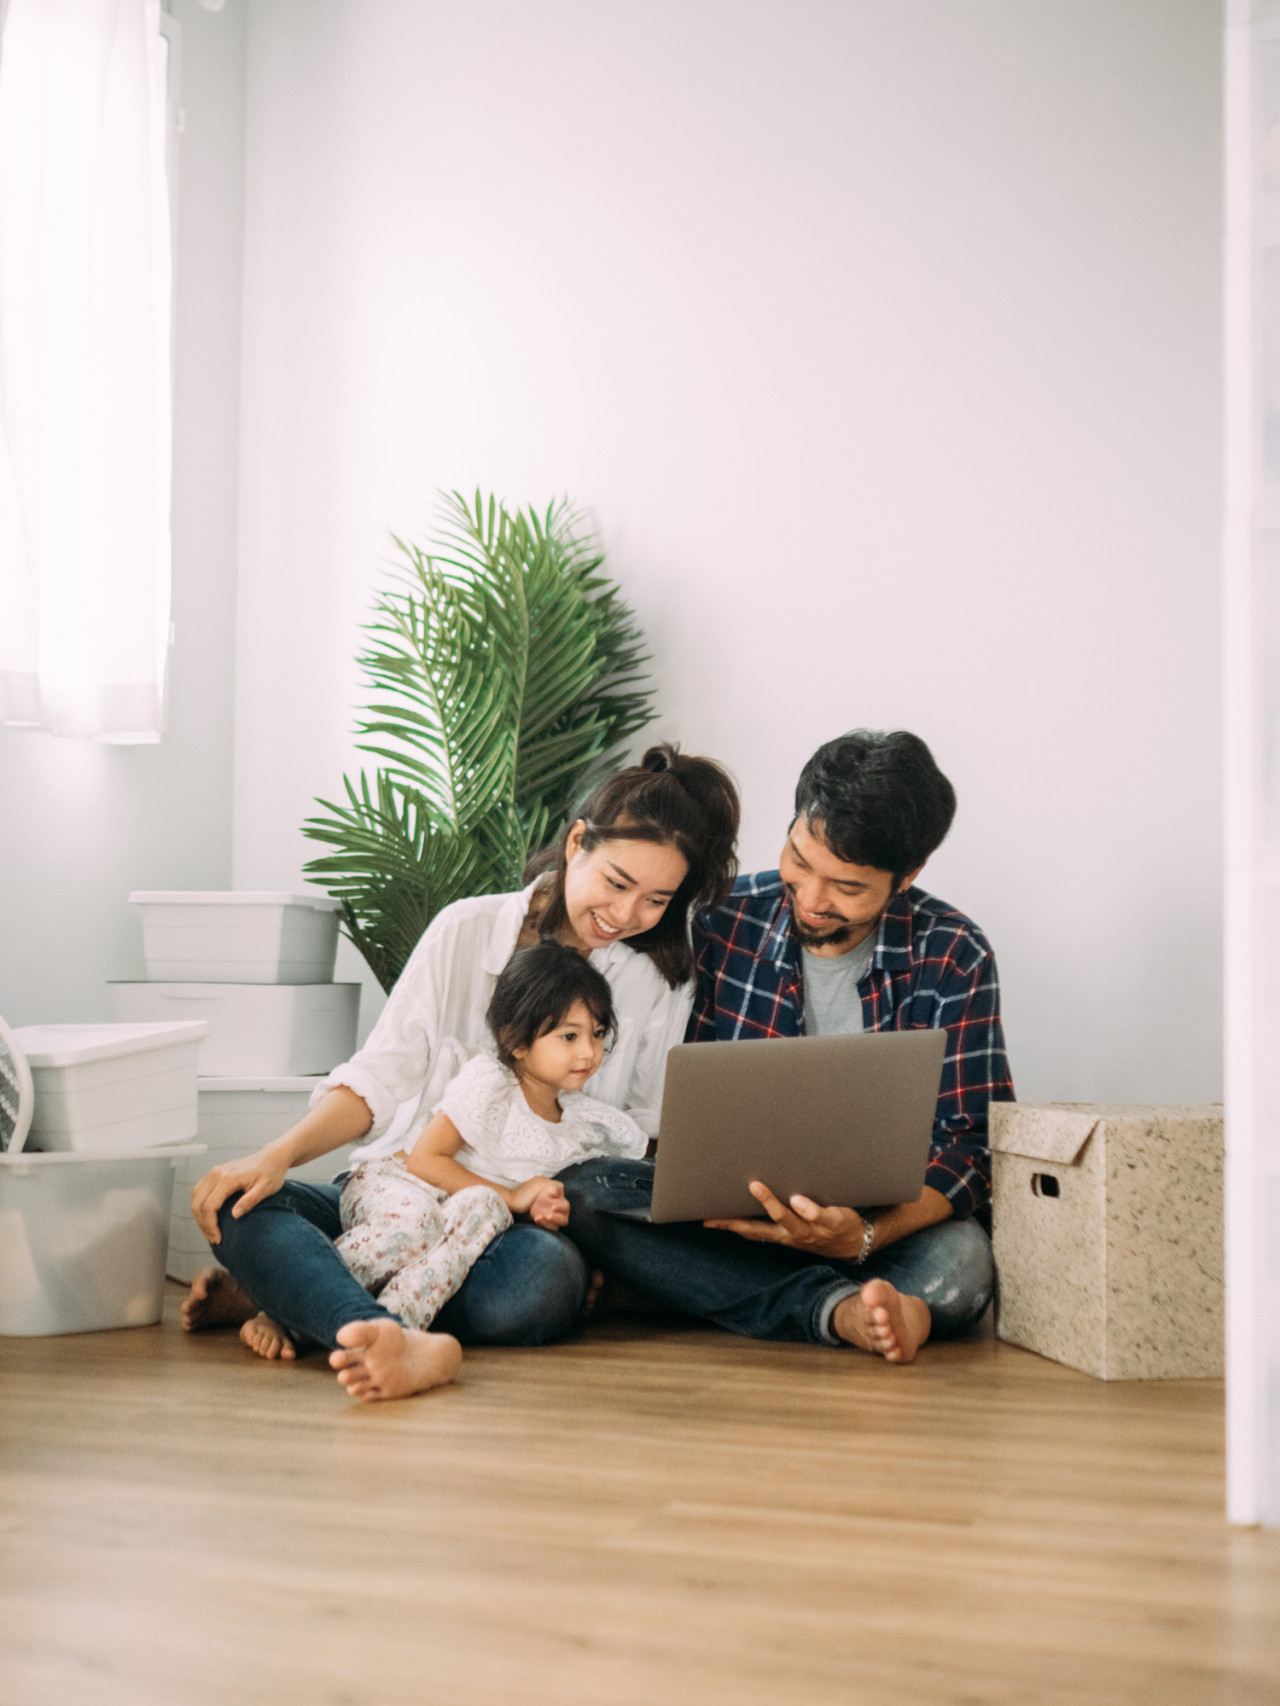 A happy family sitting on the floor in their home on their laptop.